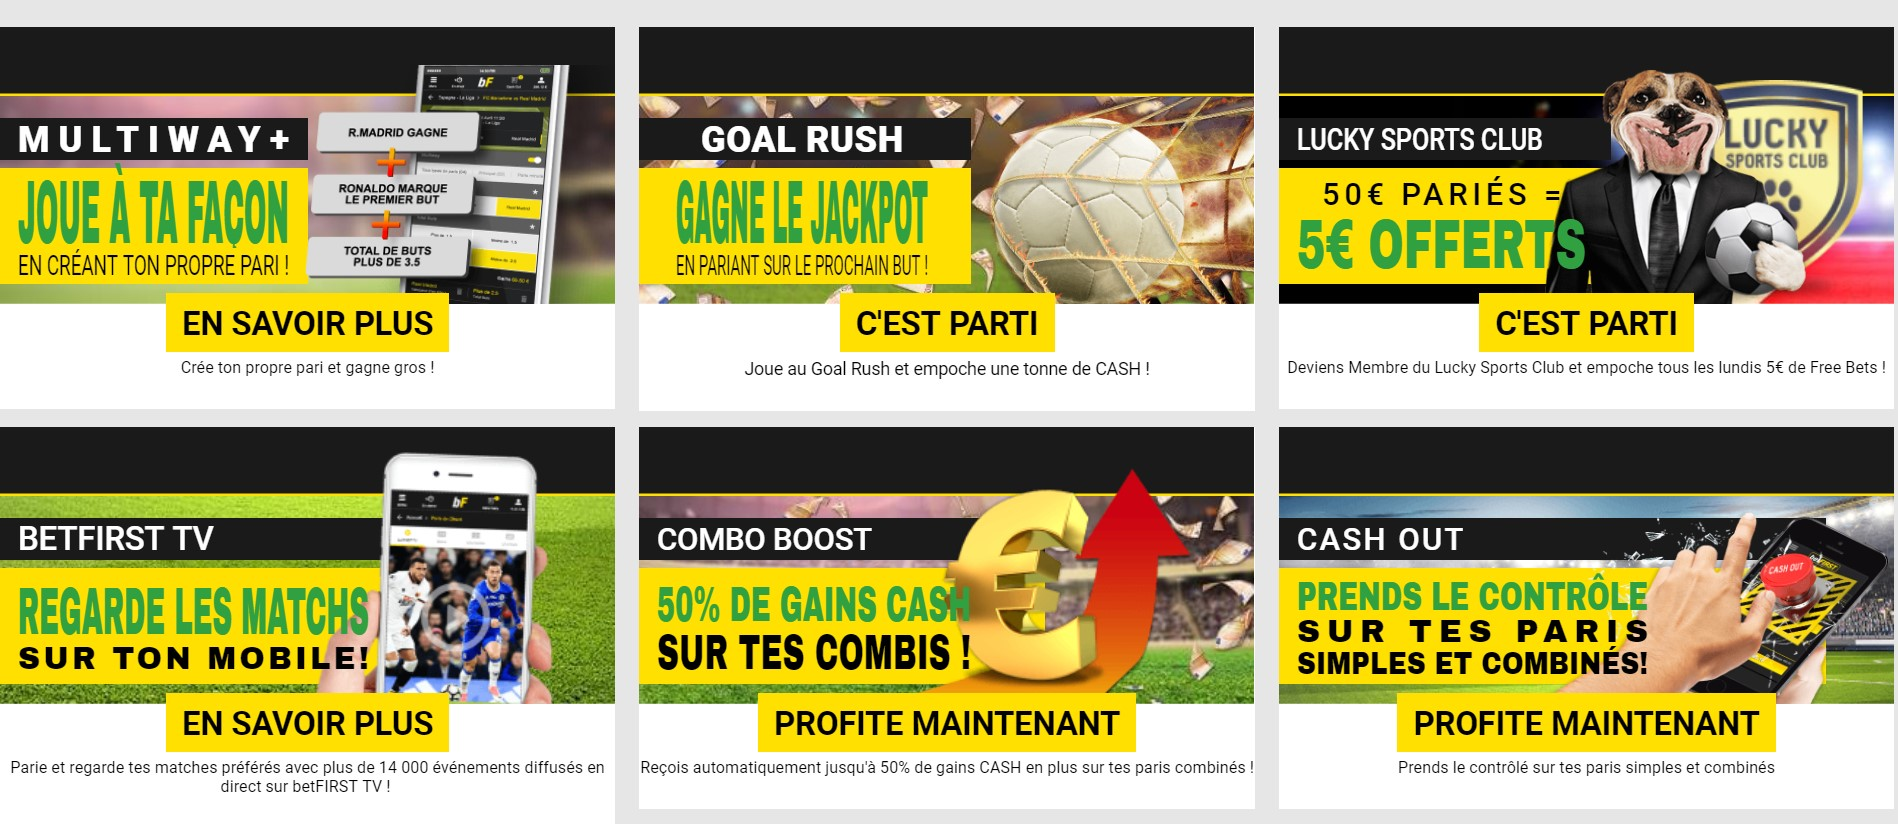 Promotions sur Betfirst